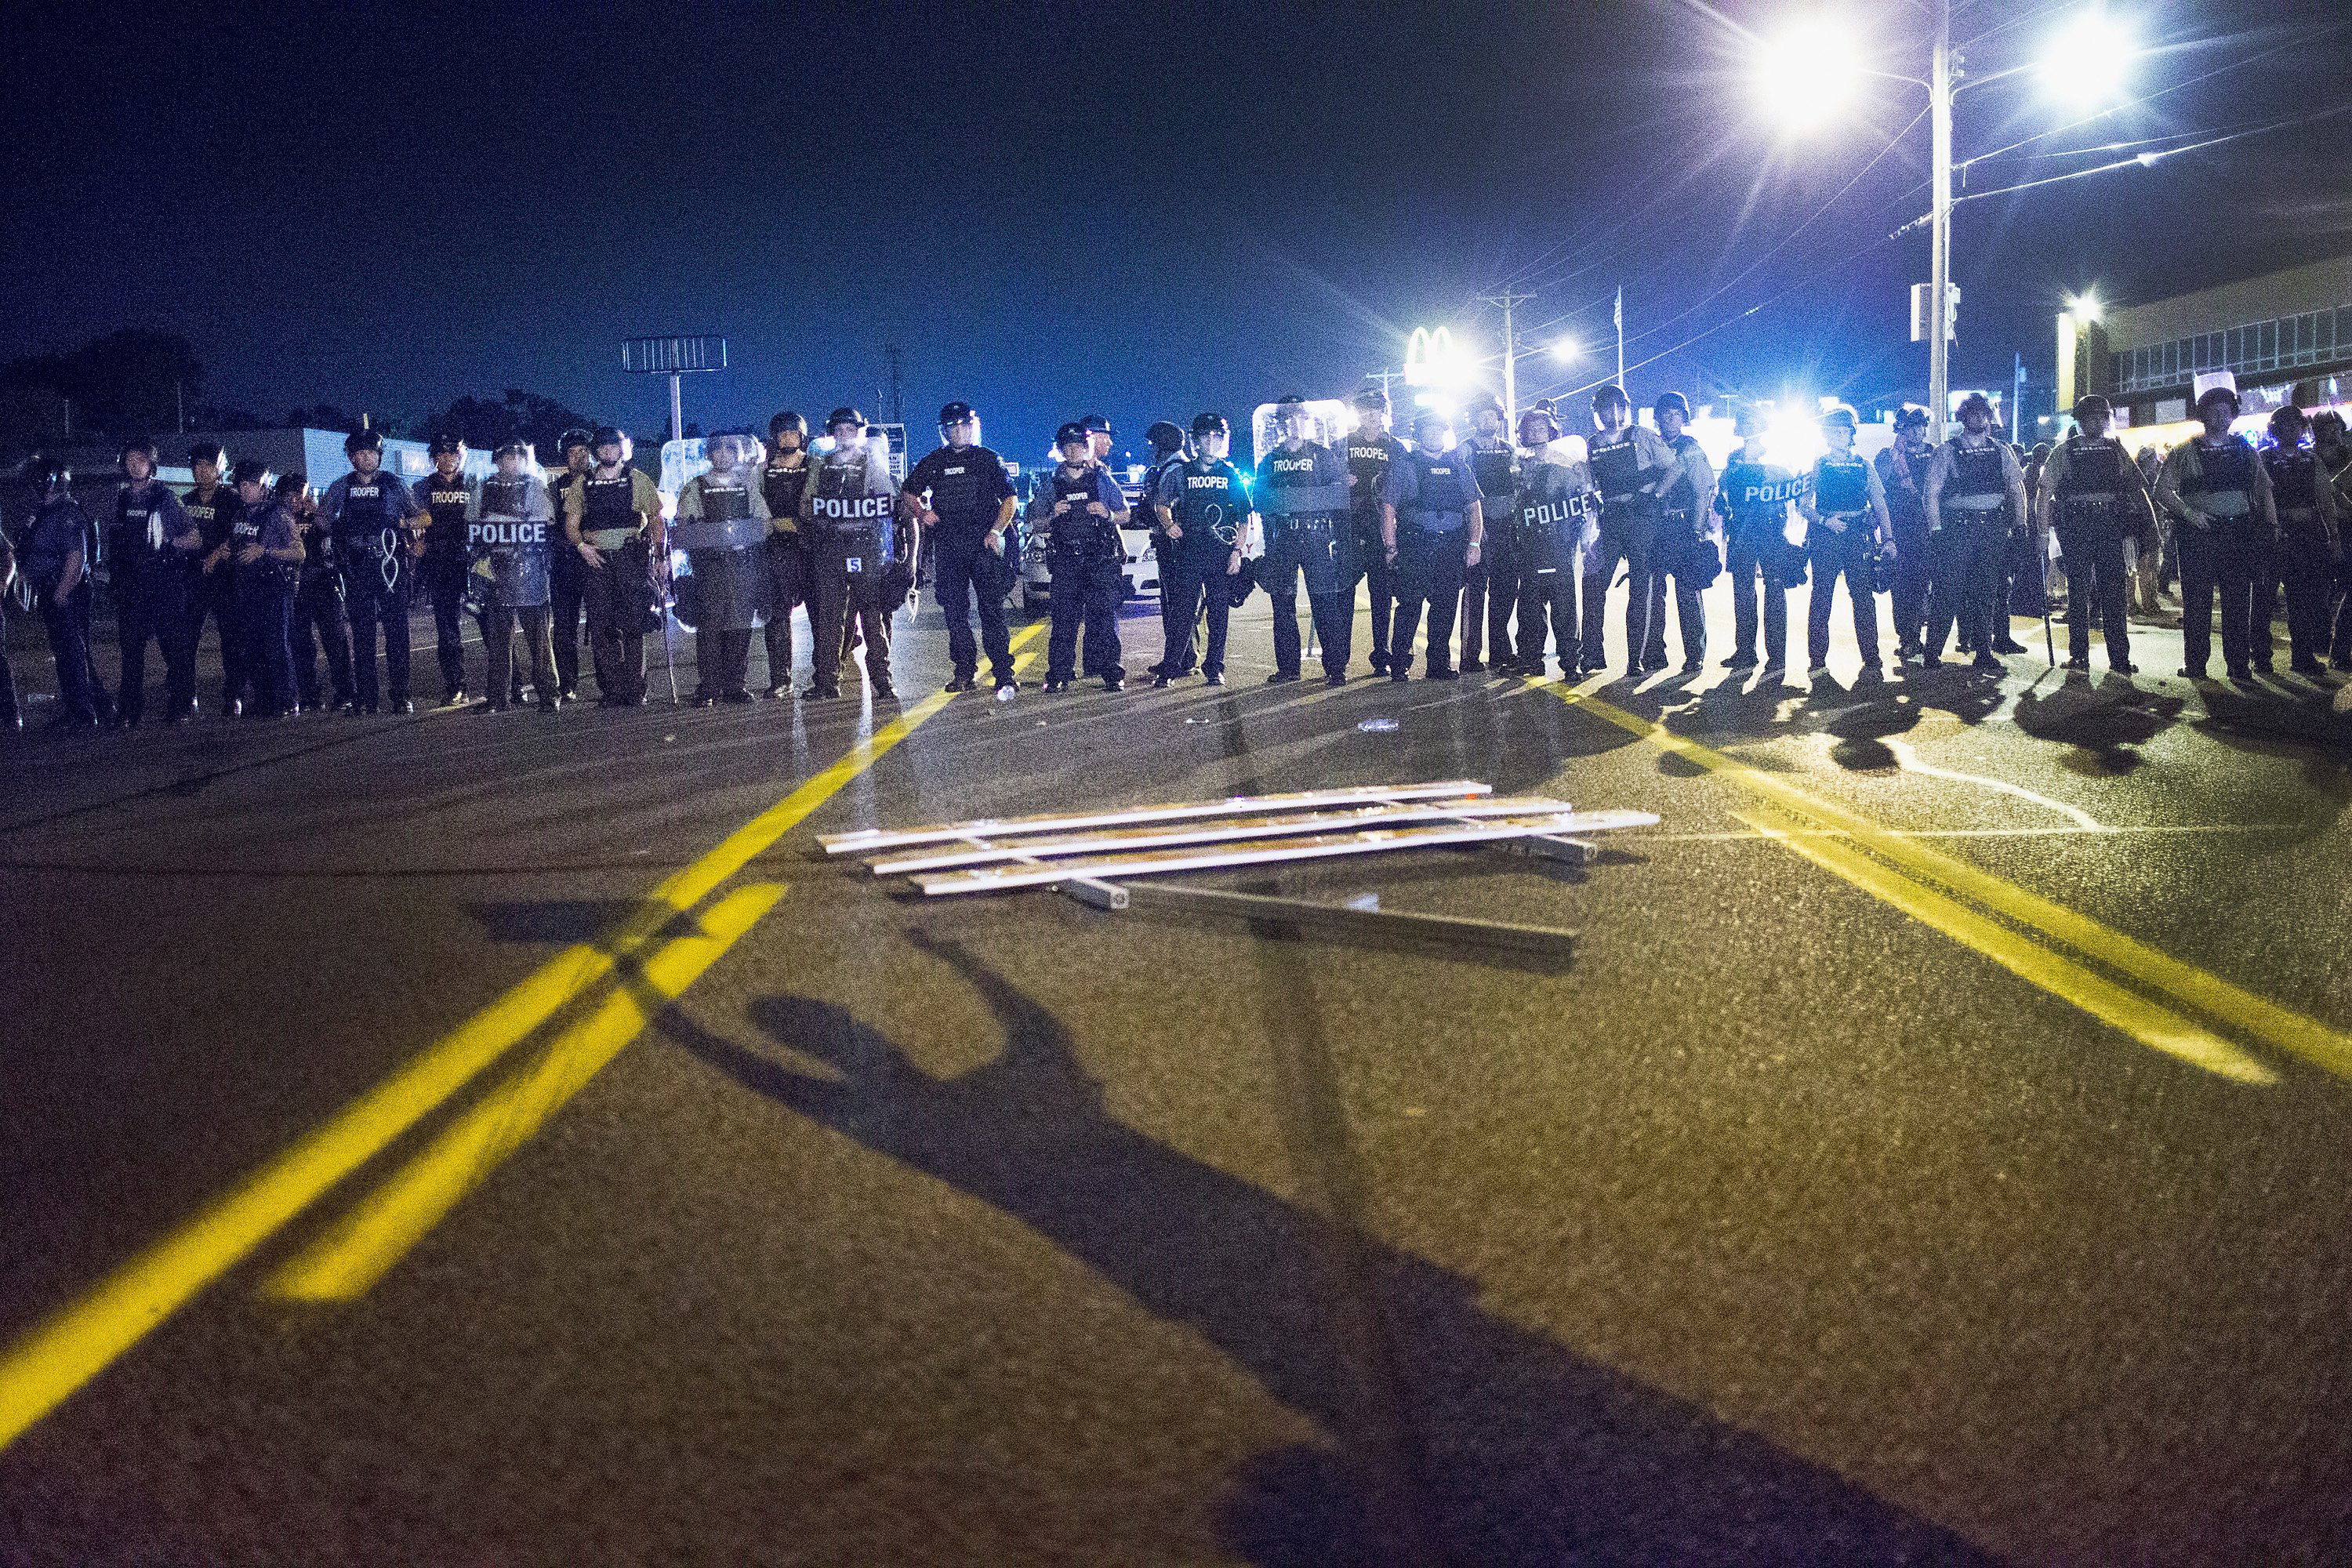 Police stand guard as demonstrators, marking the one-year anniversary of the shooting of Michael Brown, protest along West Florrisant Street on Aug. 10, 2015 in Ferguson, Mo.